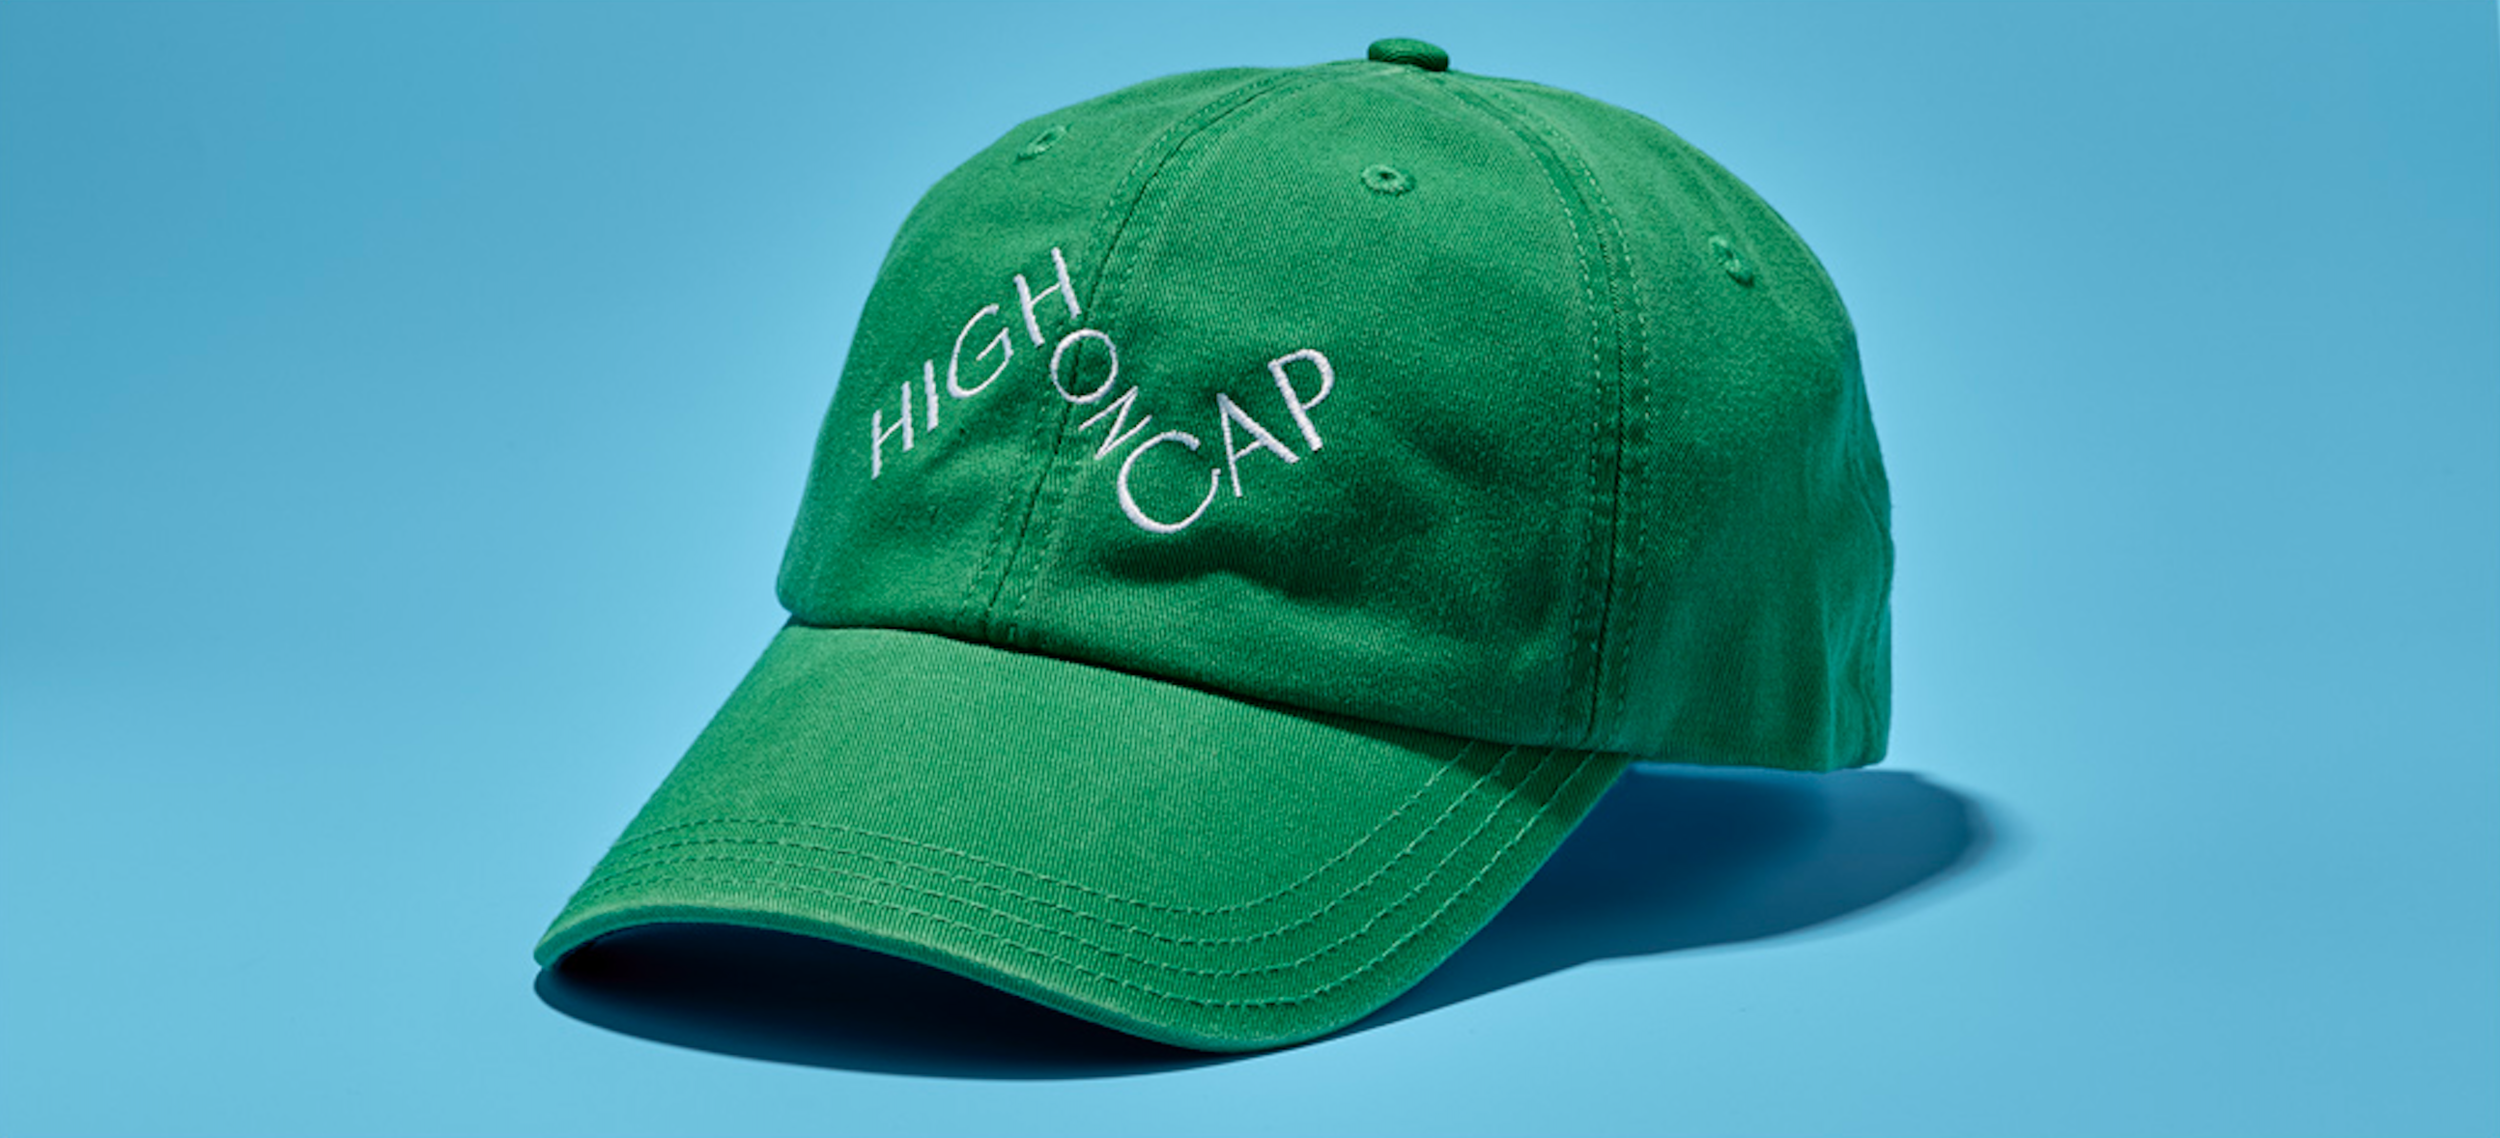 brittany-cutrone-high-on-cap-merch-6.png